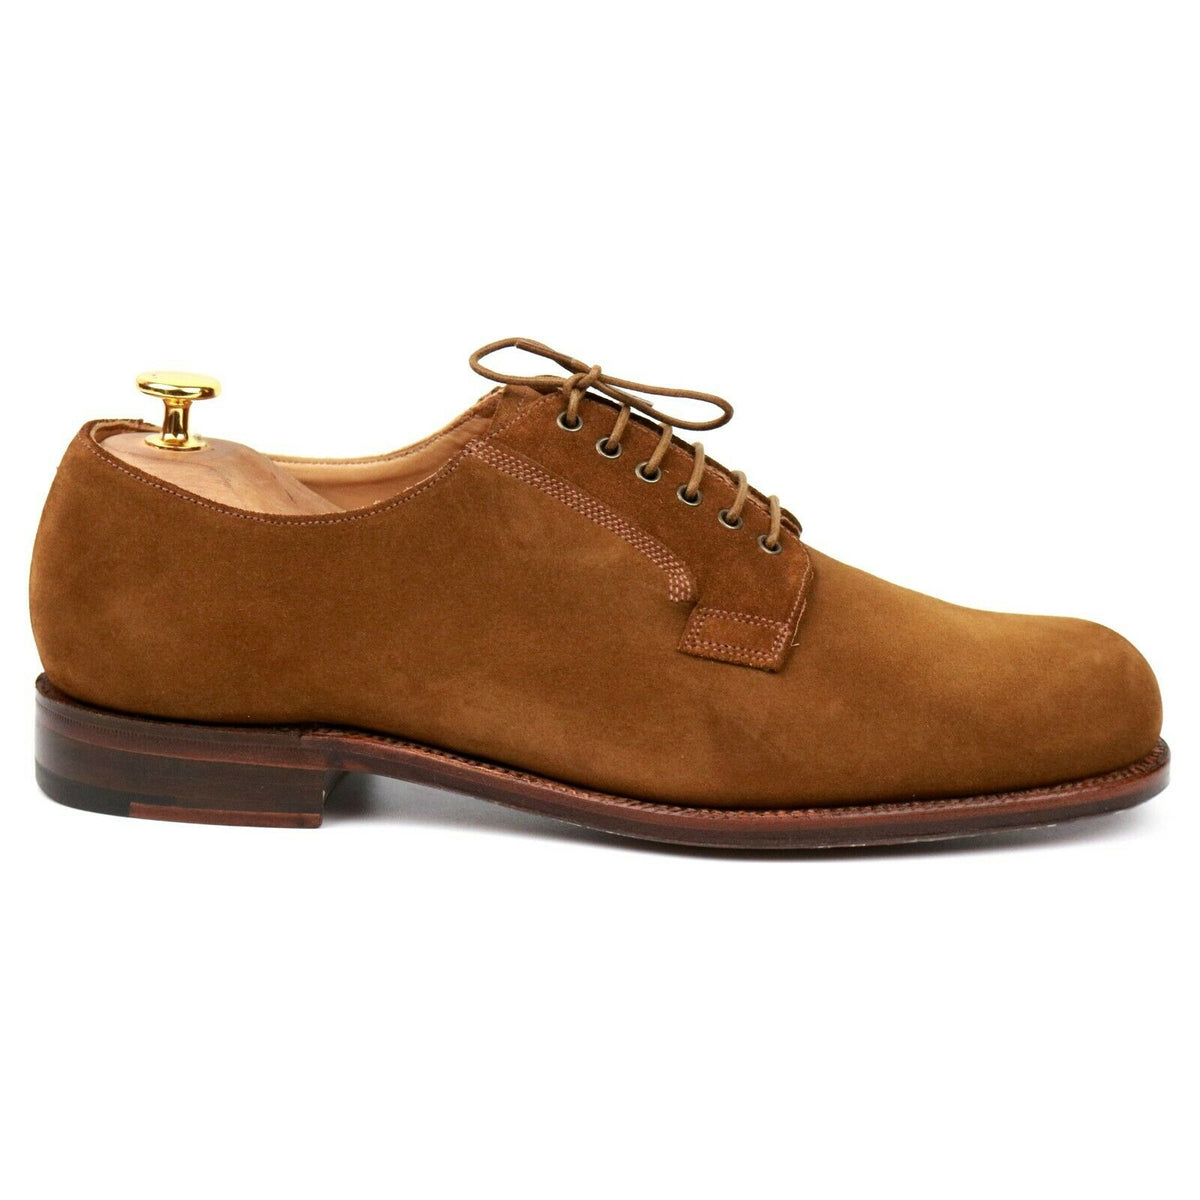 Grenson One 'Quentin' Tan Brown Suede Derby UK 8 E